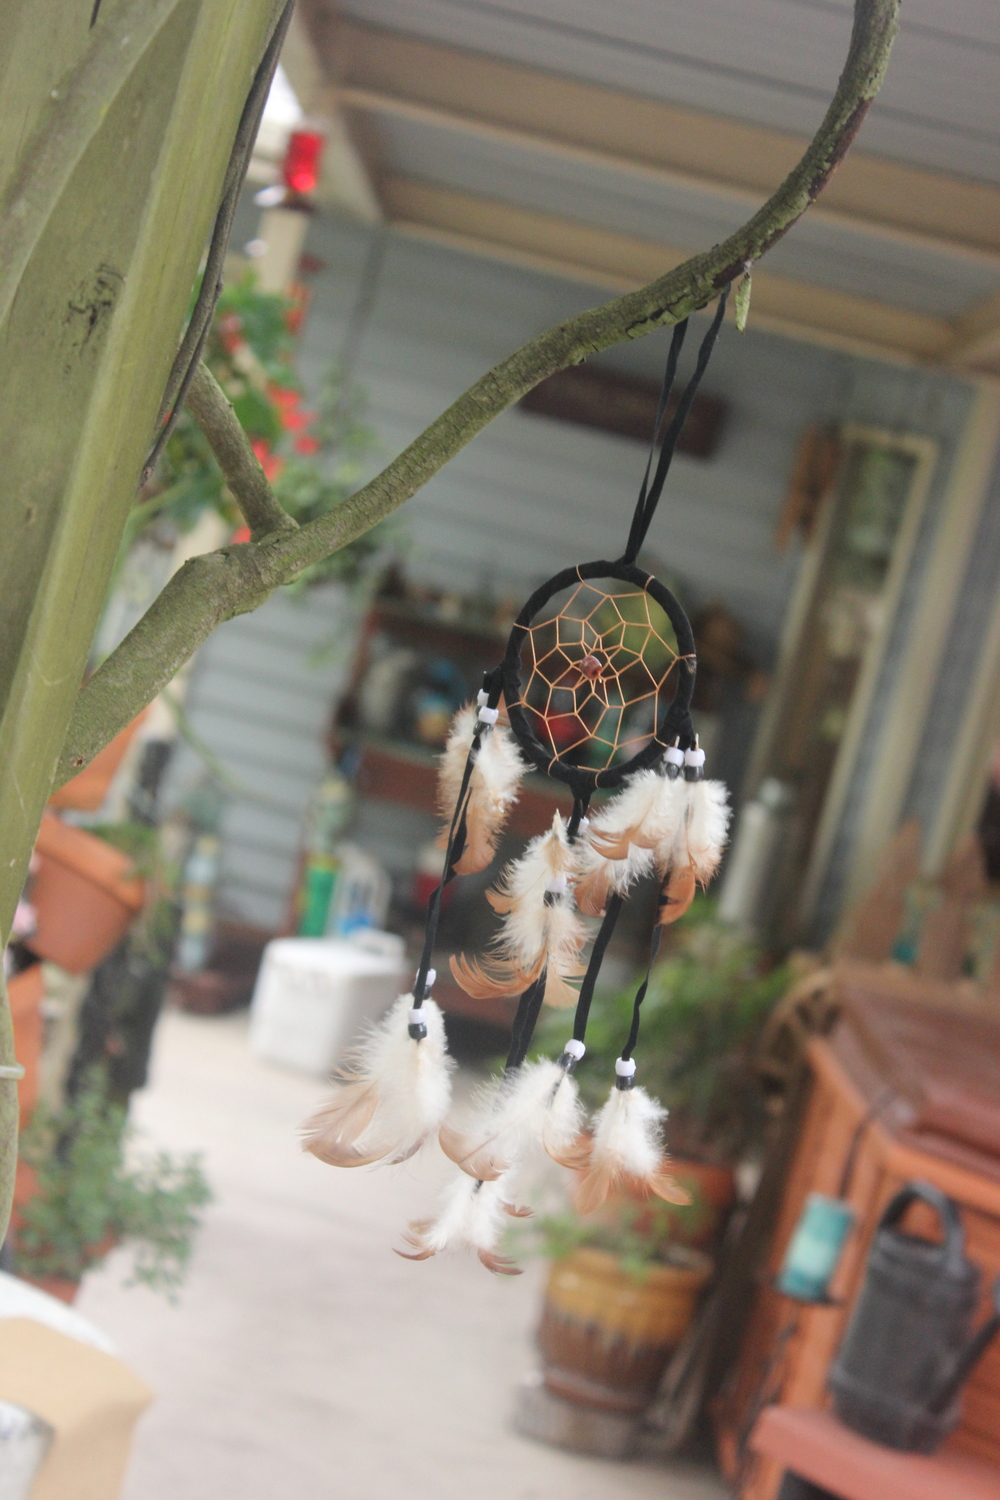 There were touches of dream catchers everywhere!